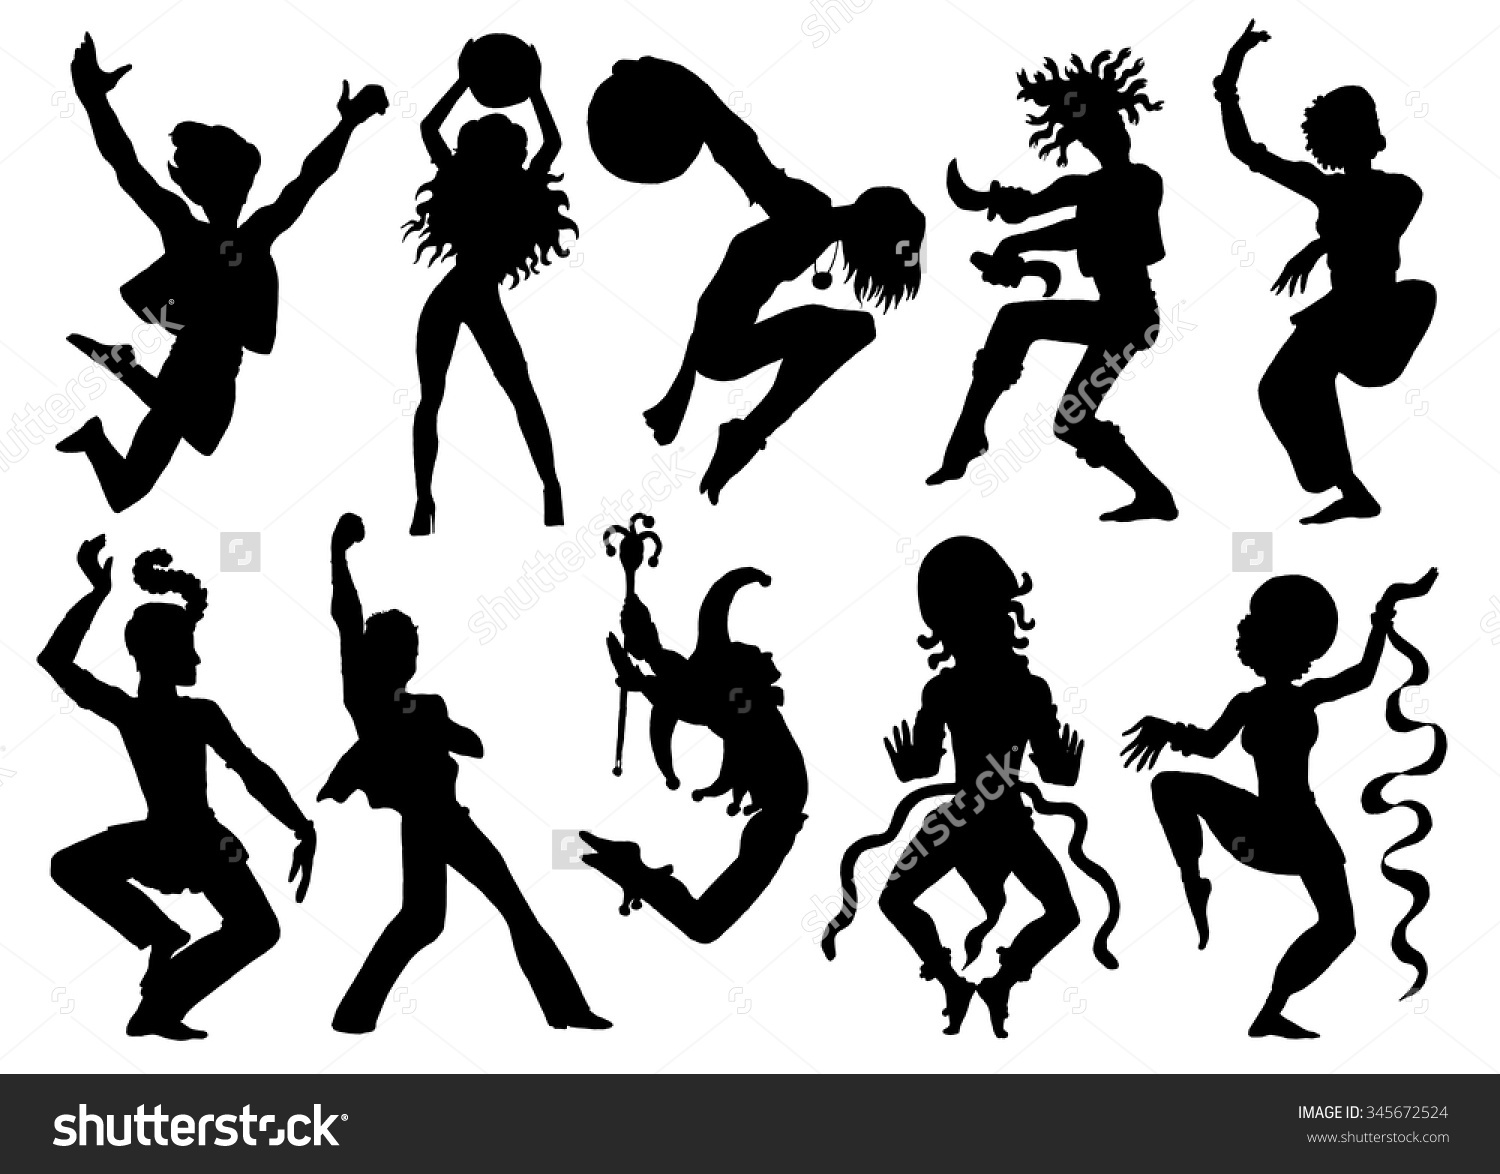 Design Set Silhouettes Dancers Performers Action Stock Vector.